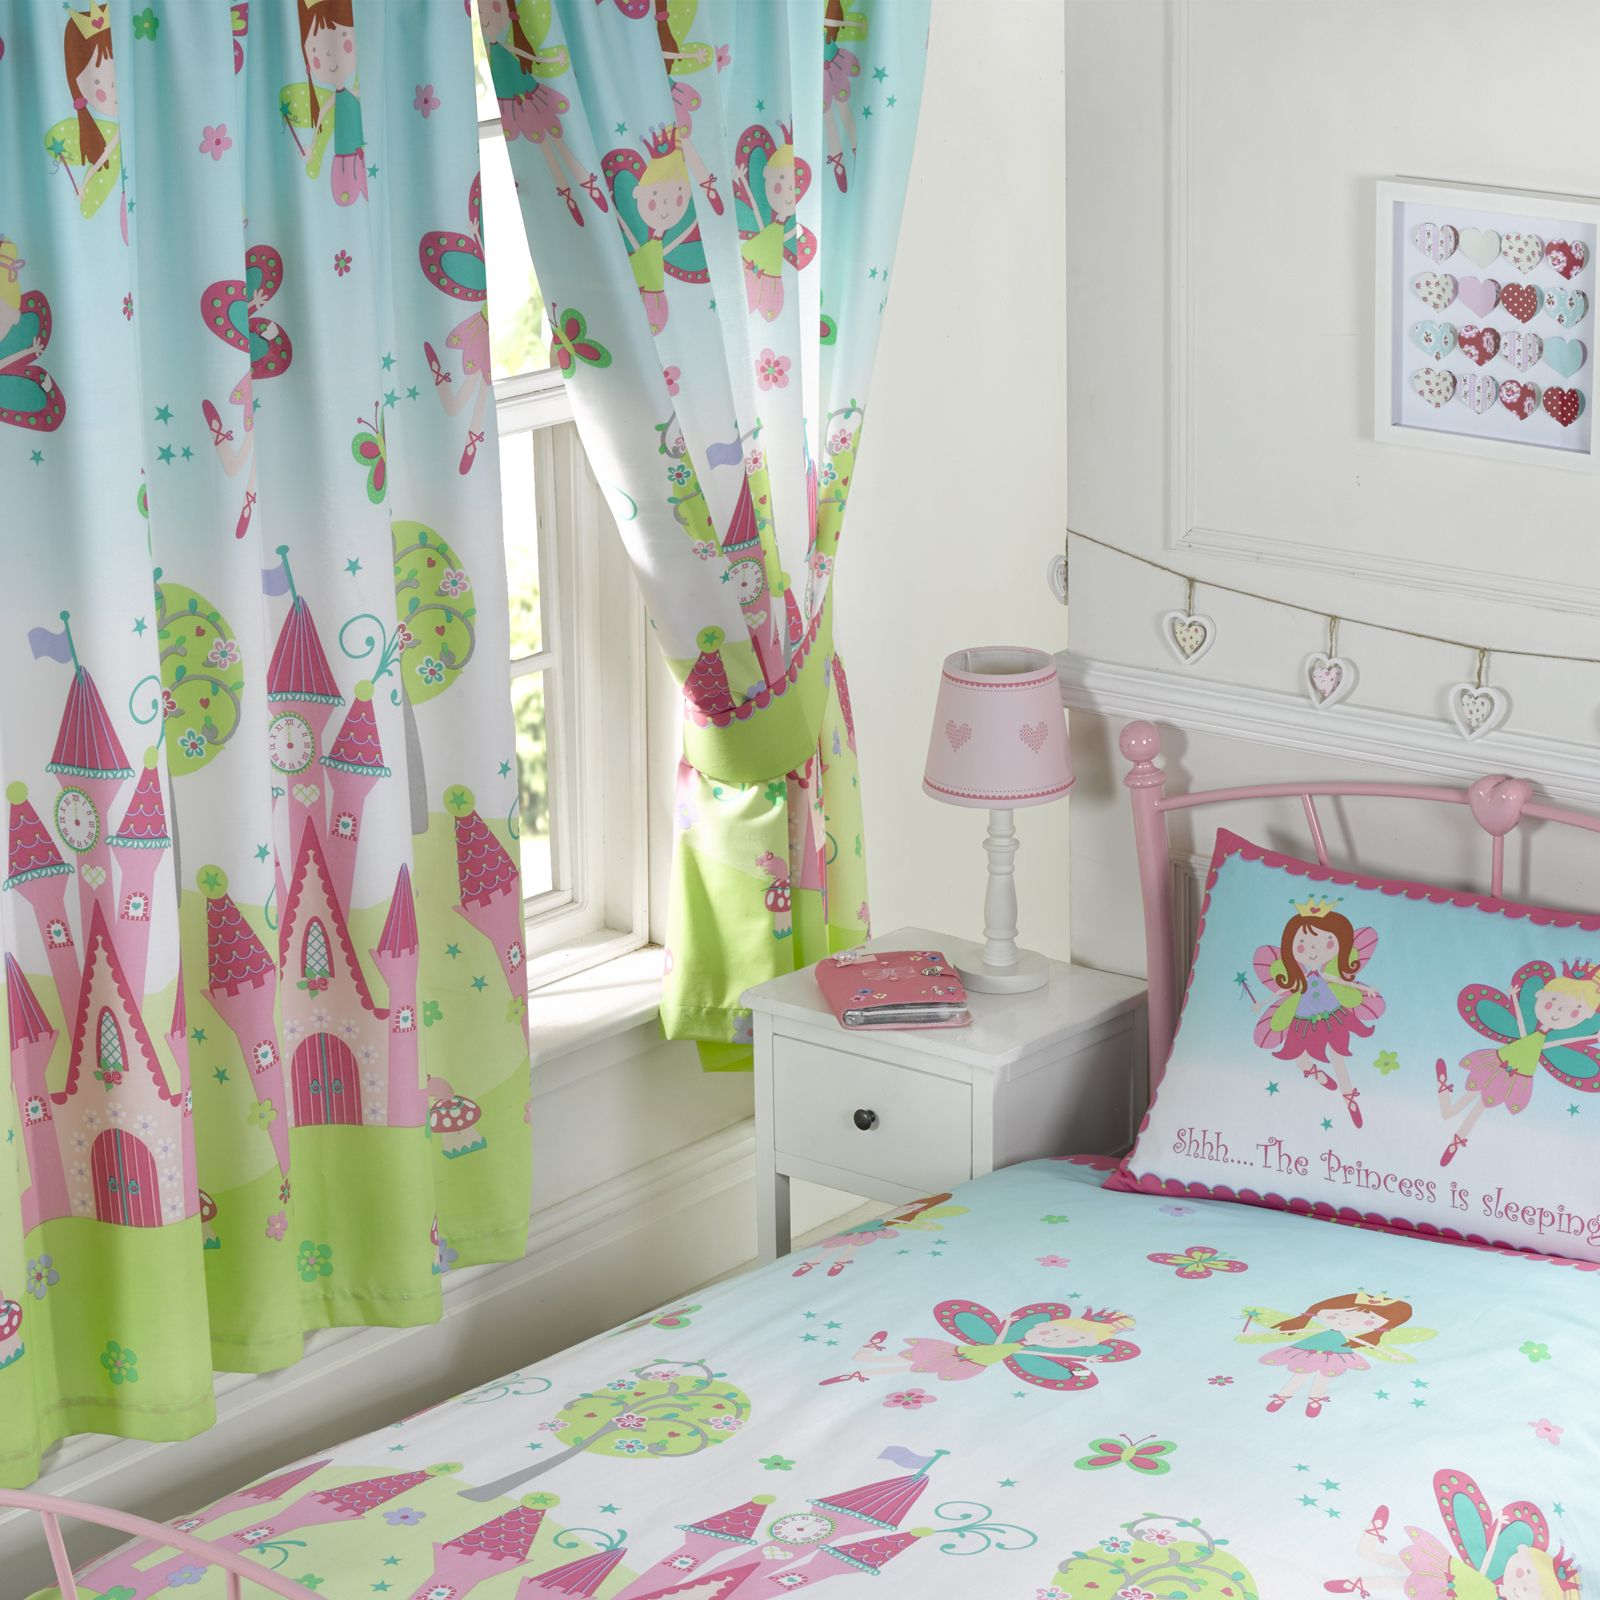 Princess is sleeping bedroom bedding and curtains for Curtain designs for girls bedroom